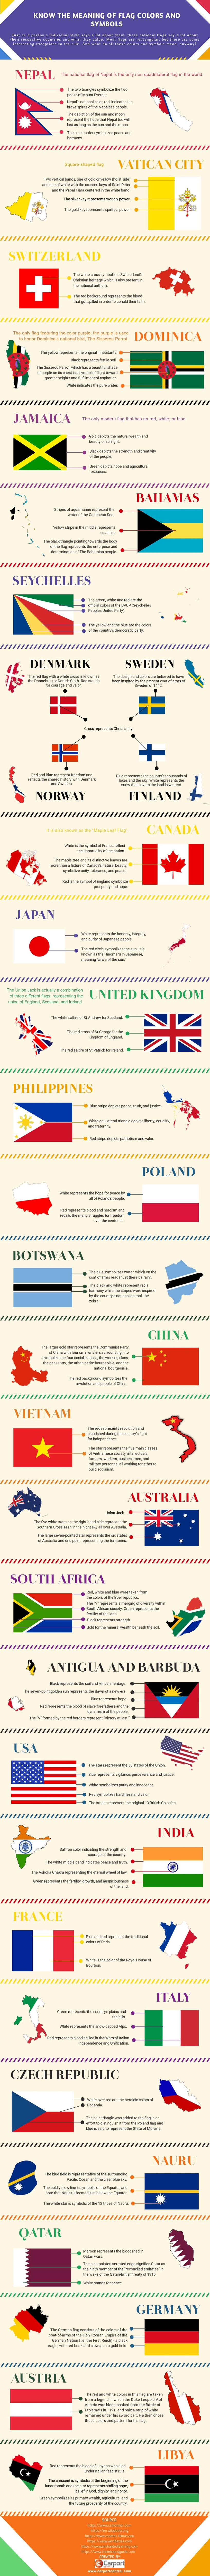 Know-the-Meaning-of-Flag-Colors-and-Symbols-infographic-plaza